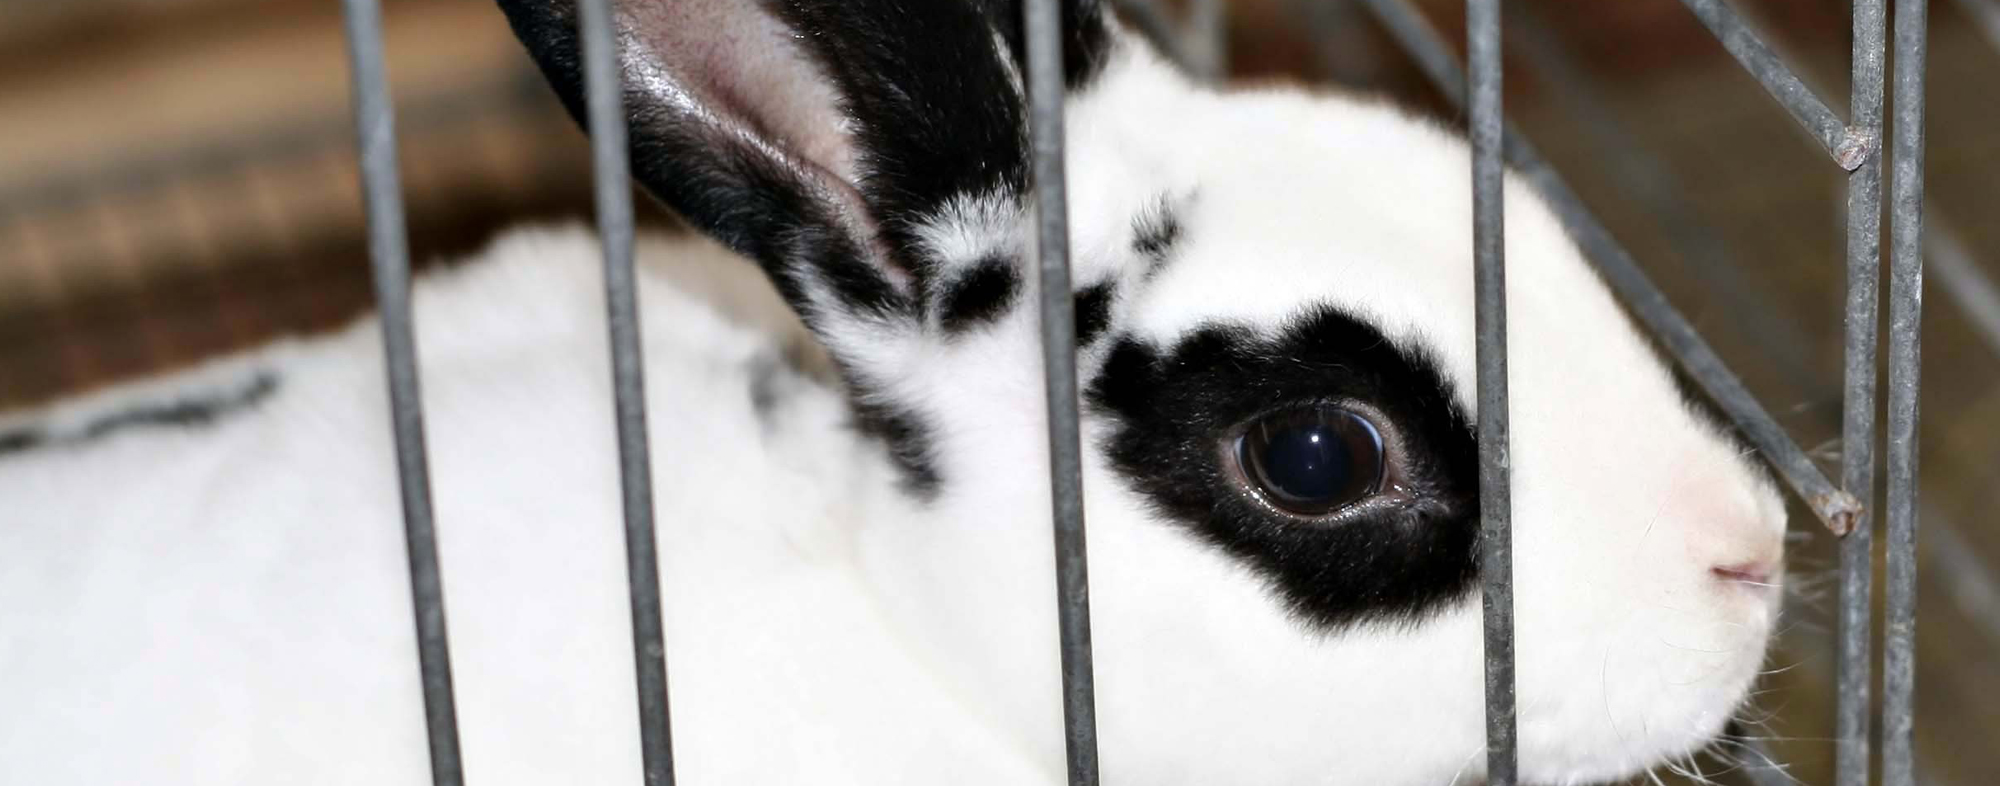 White pet rabbit with black fur around eyes, trying to escape his cage